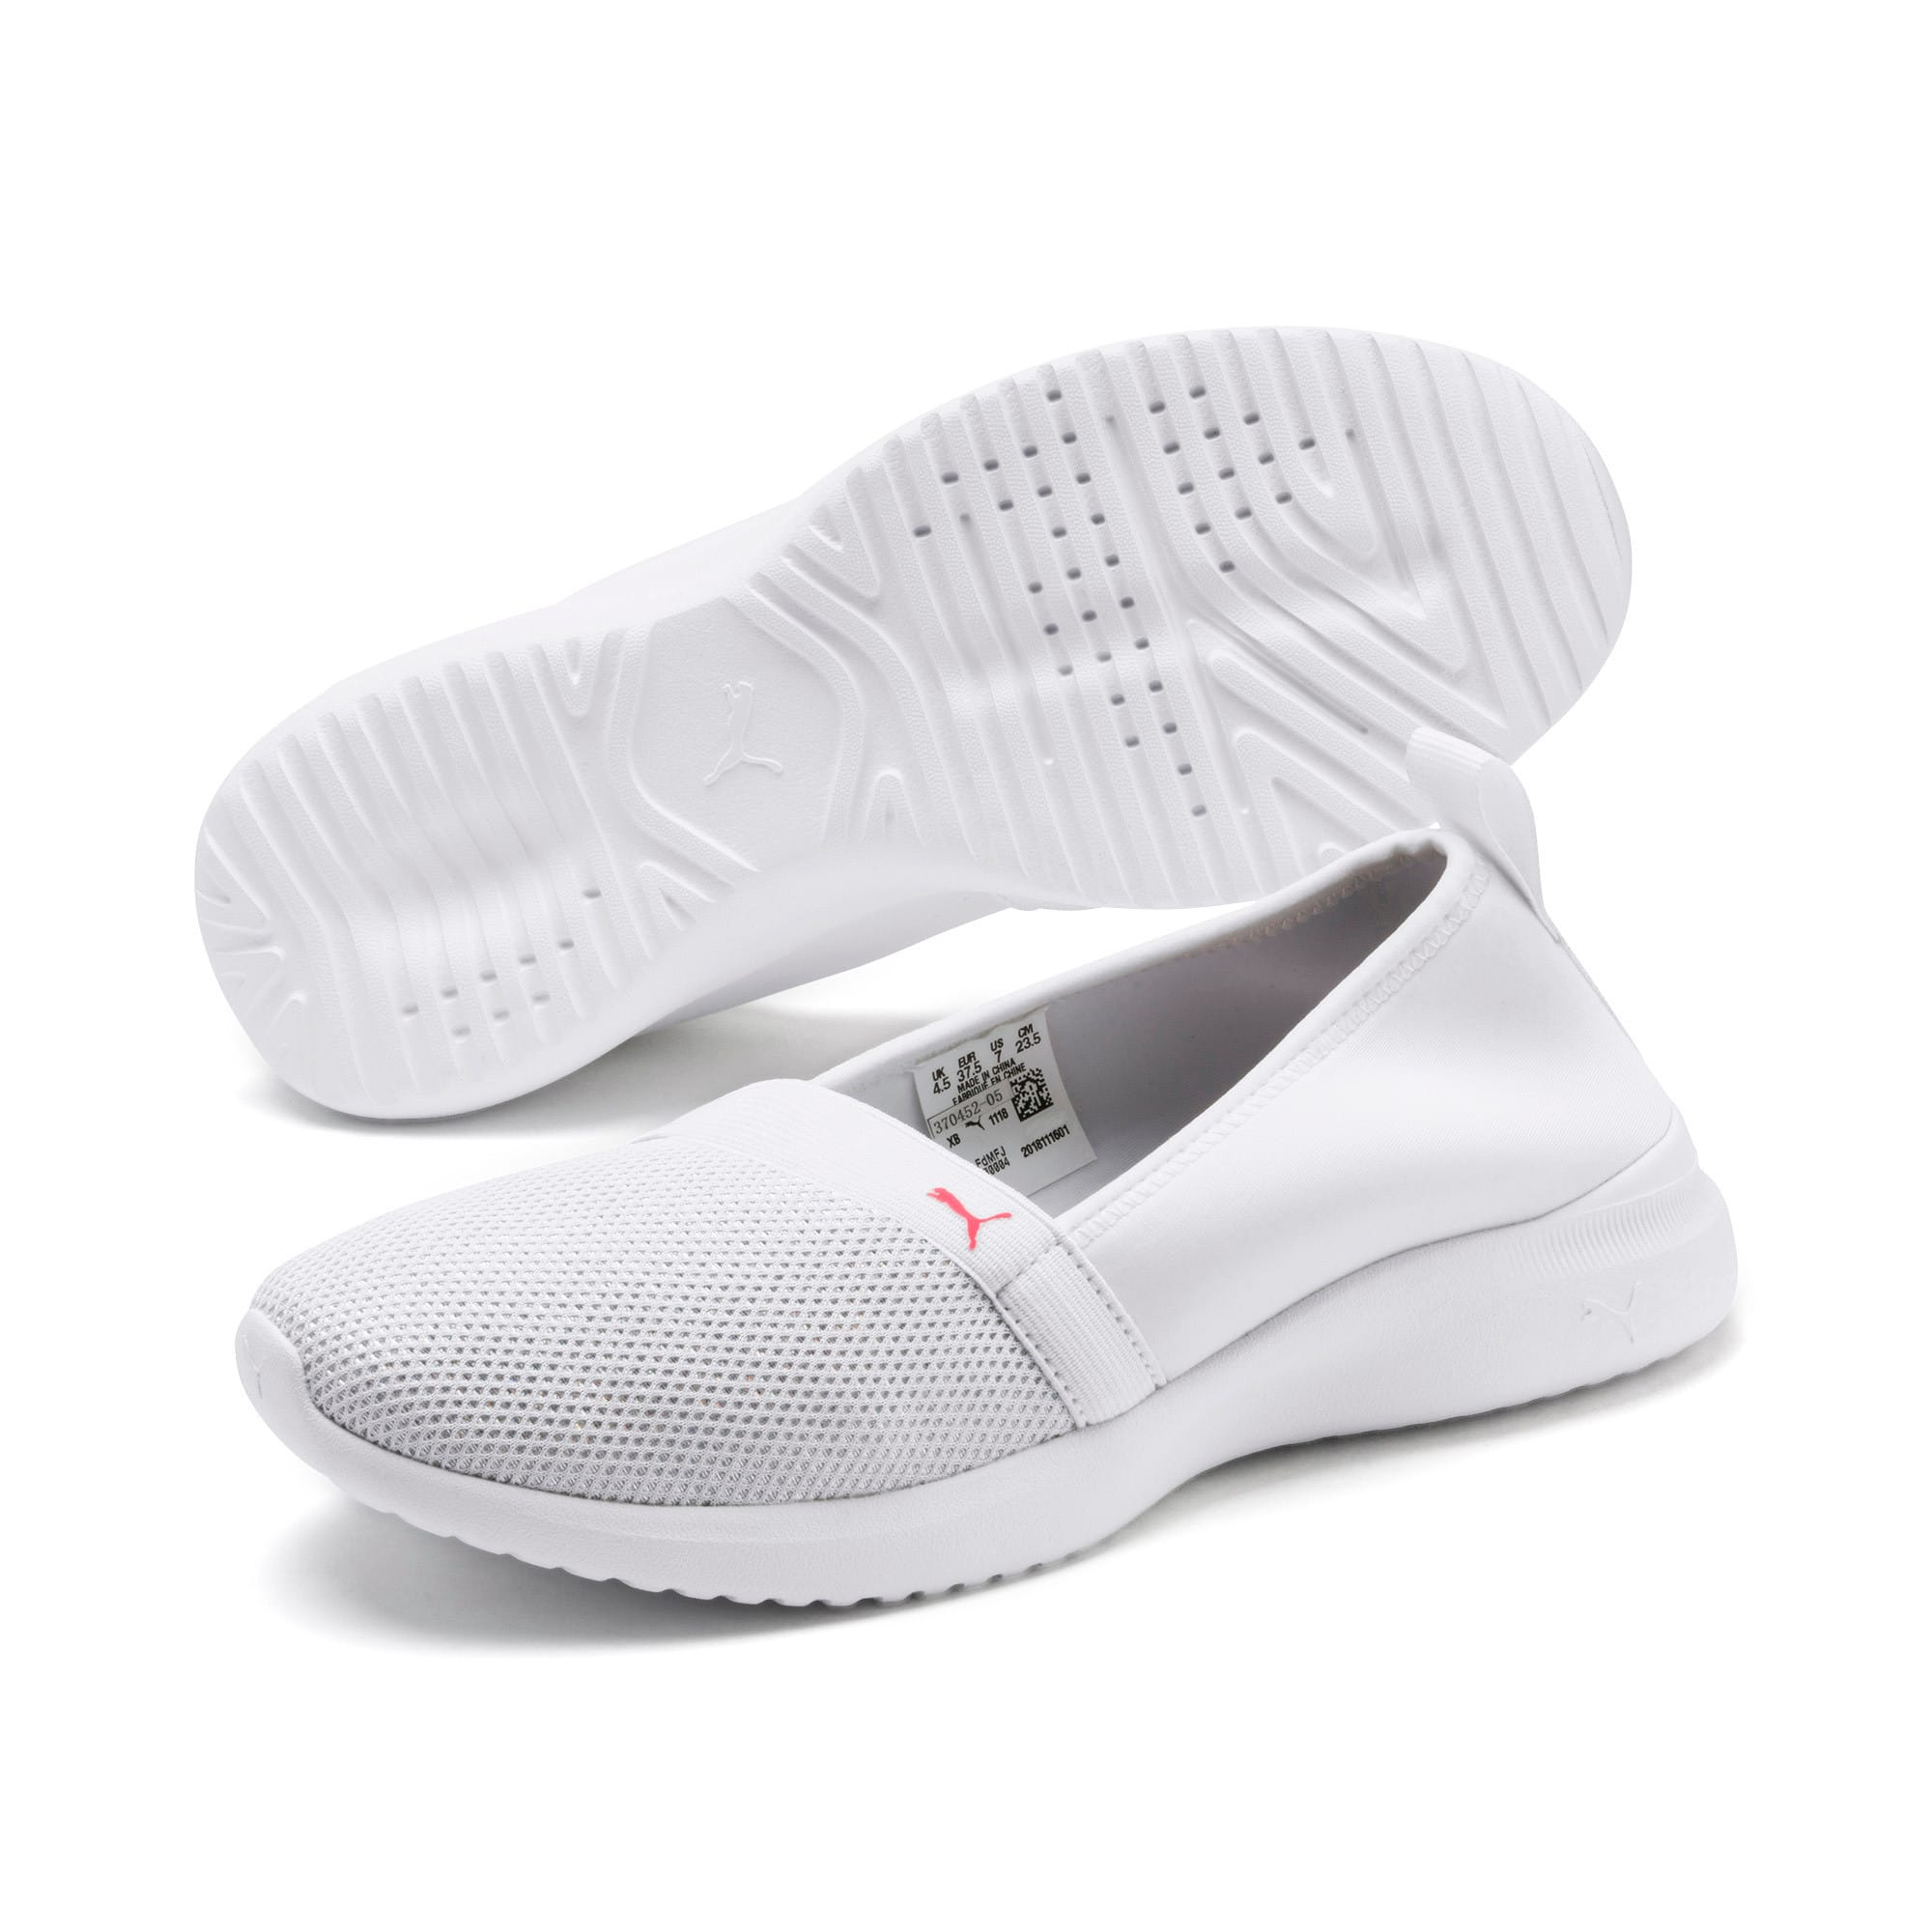 Thumbnail 2 of Adelina Sparkle Women's Trainers, Puma White-Pink Alert, medium-IND